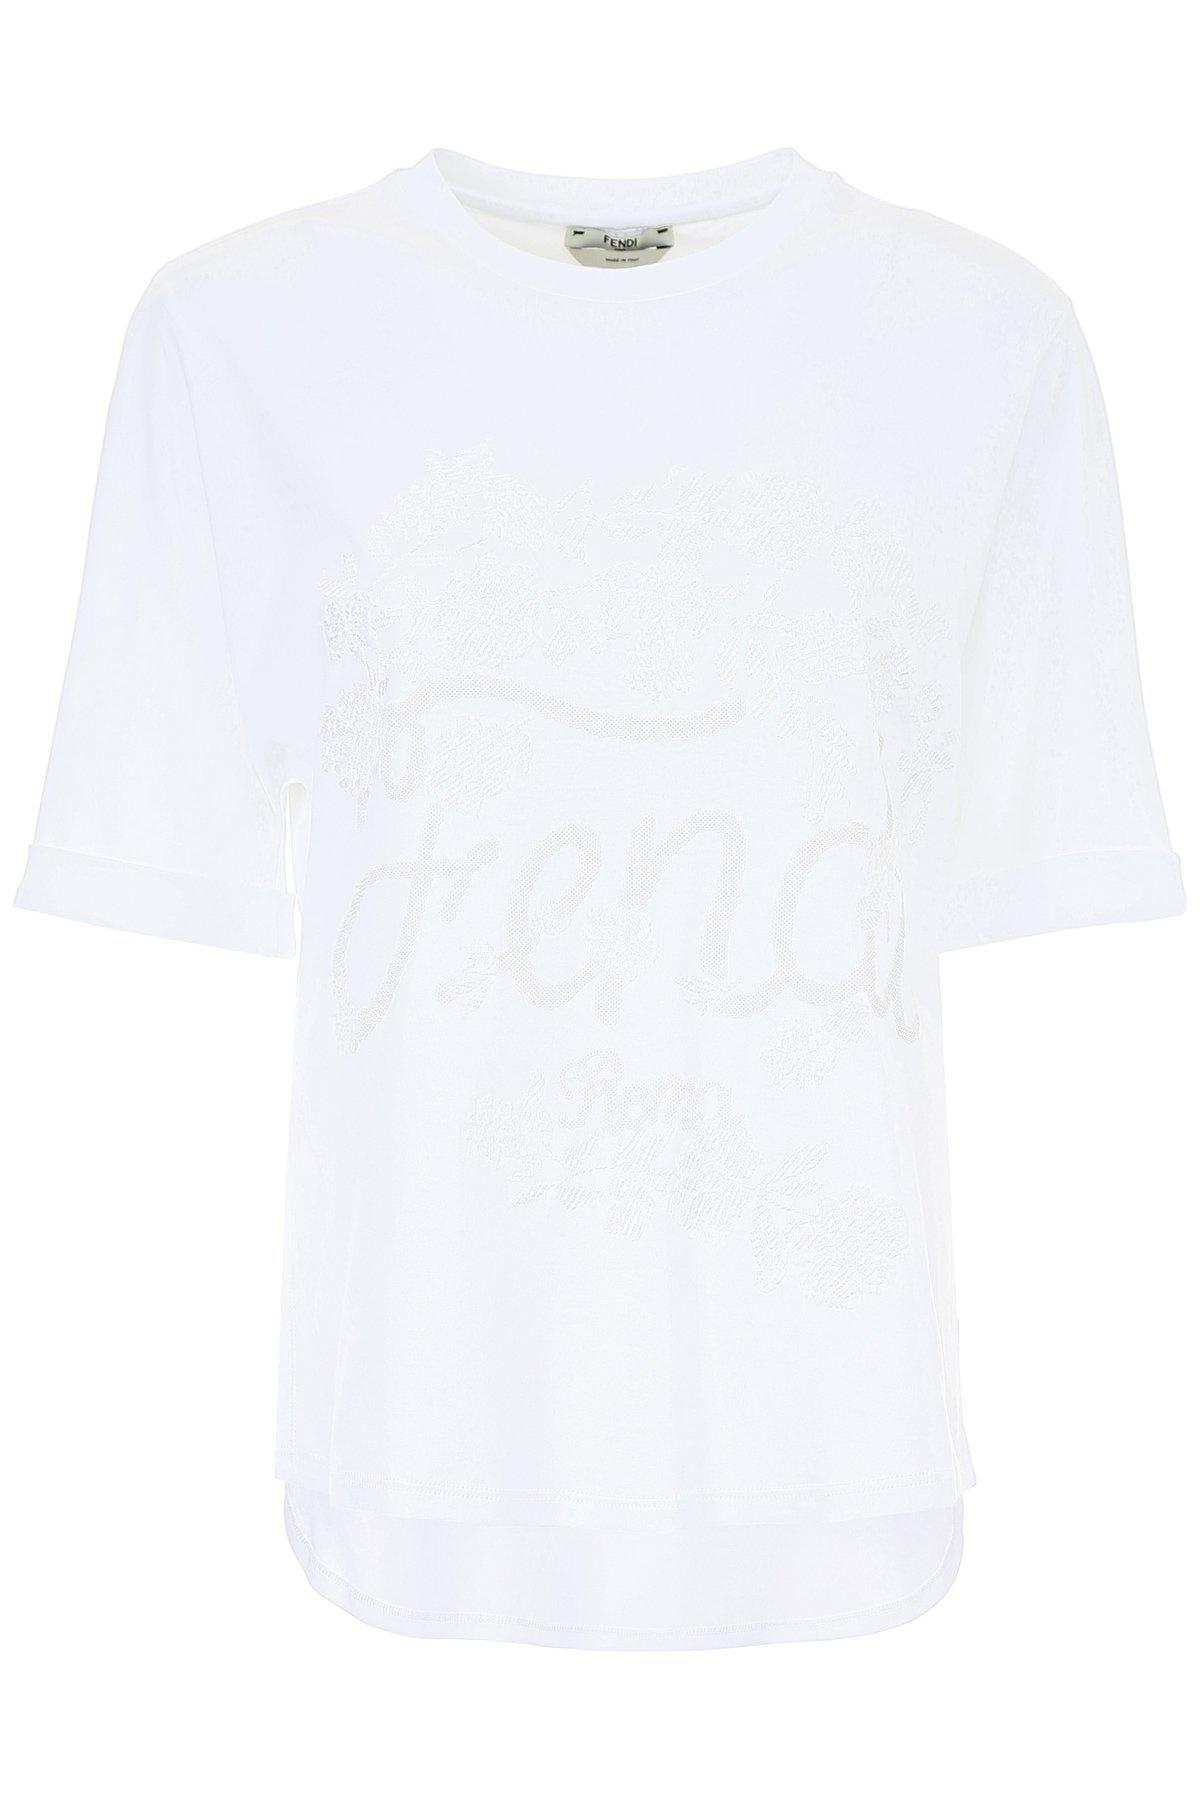 369b0277b599 Fendi Embroidered Floral Logo T-shirt in White for Men - Lyst